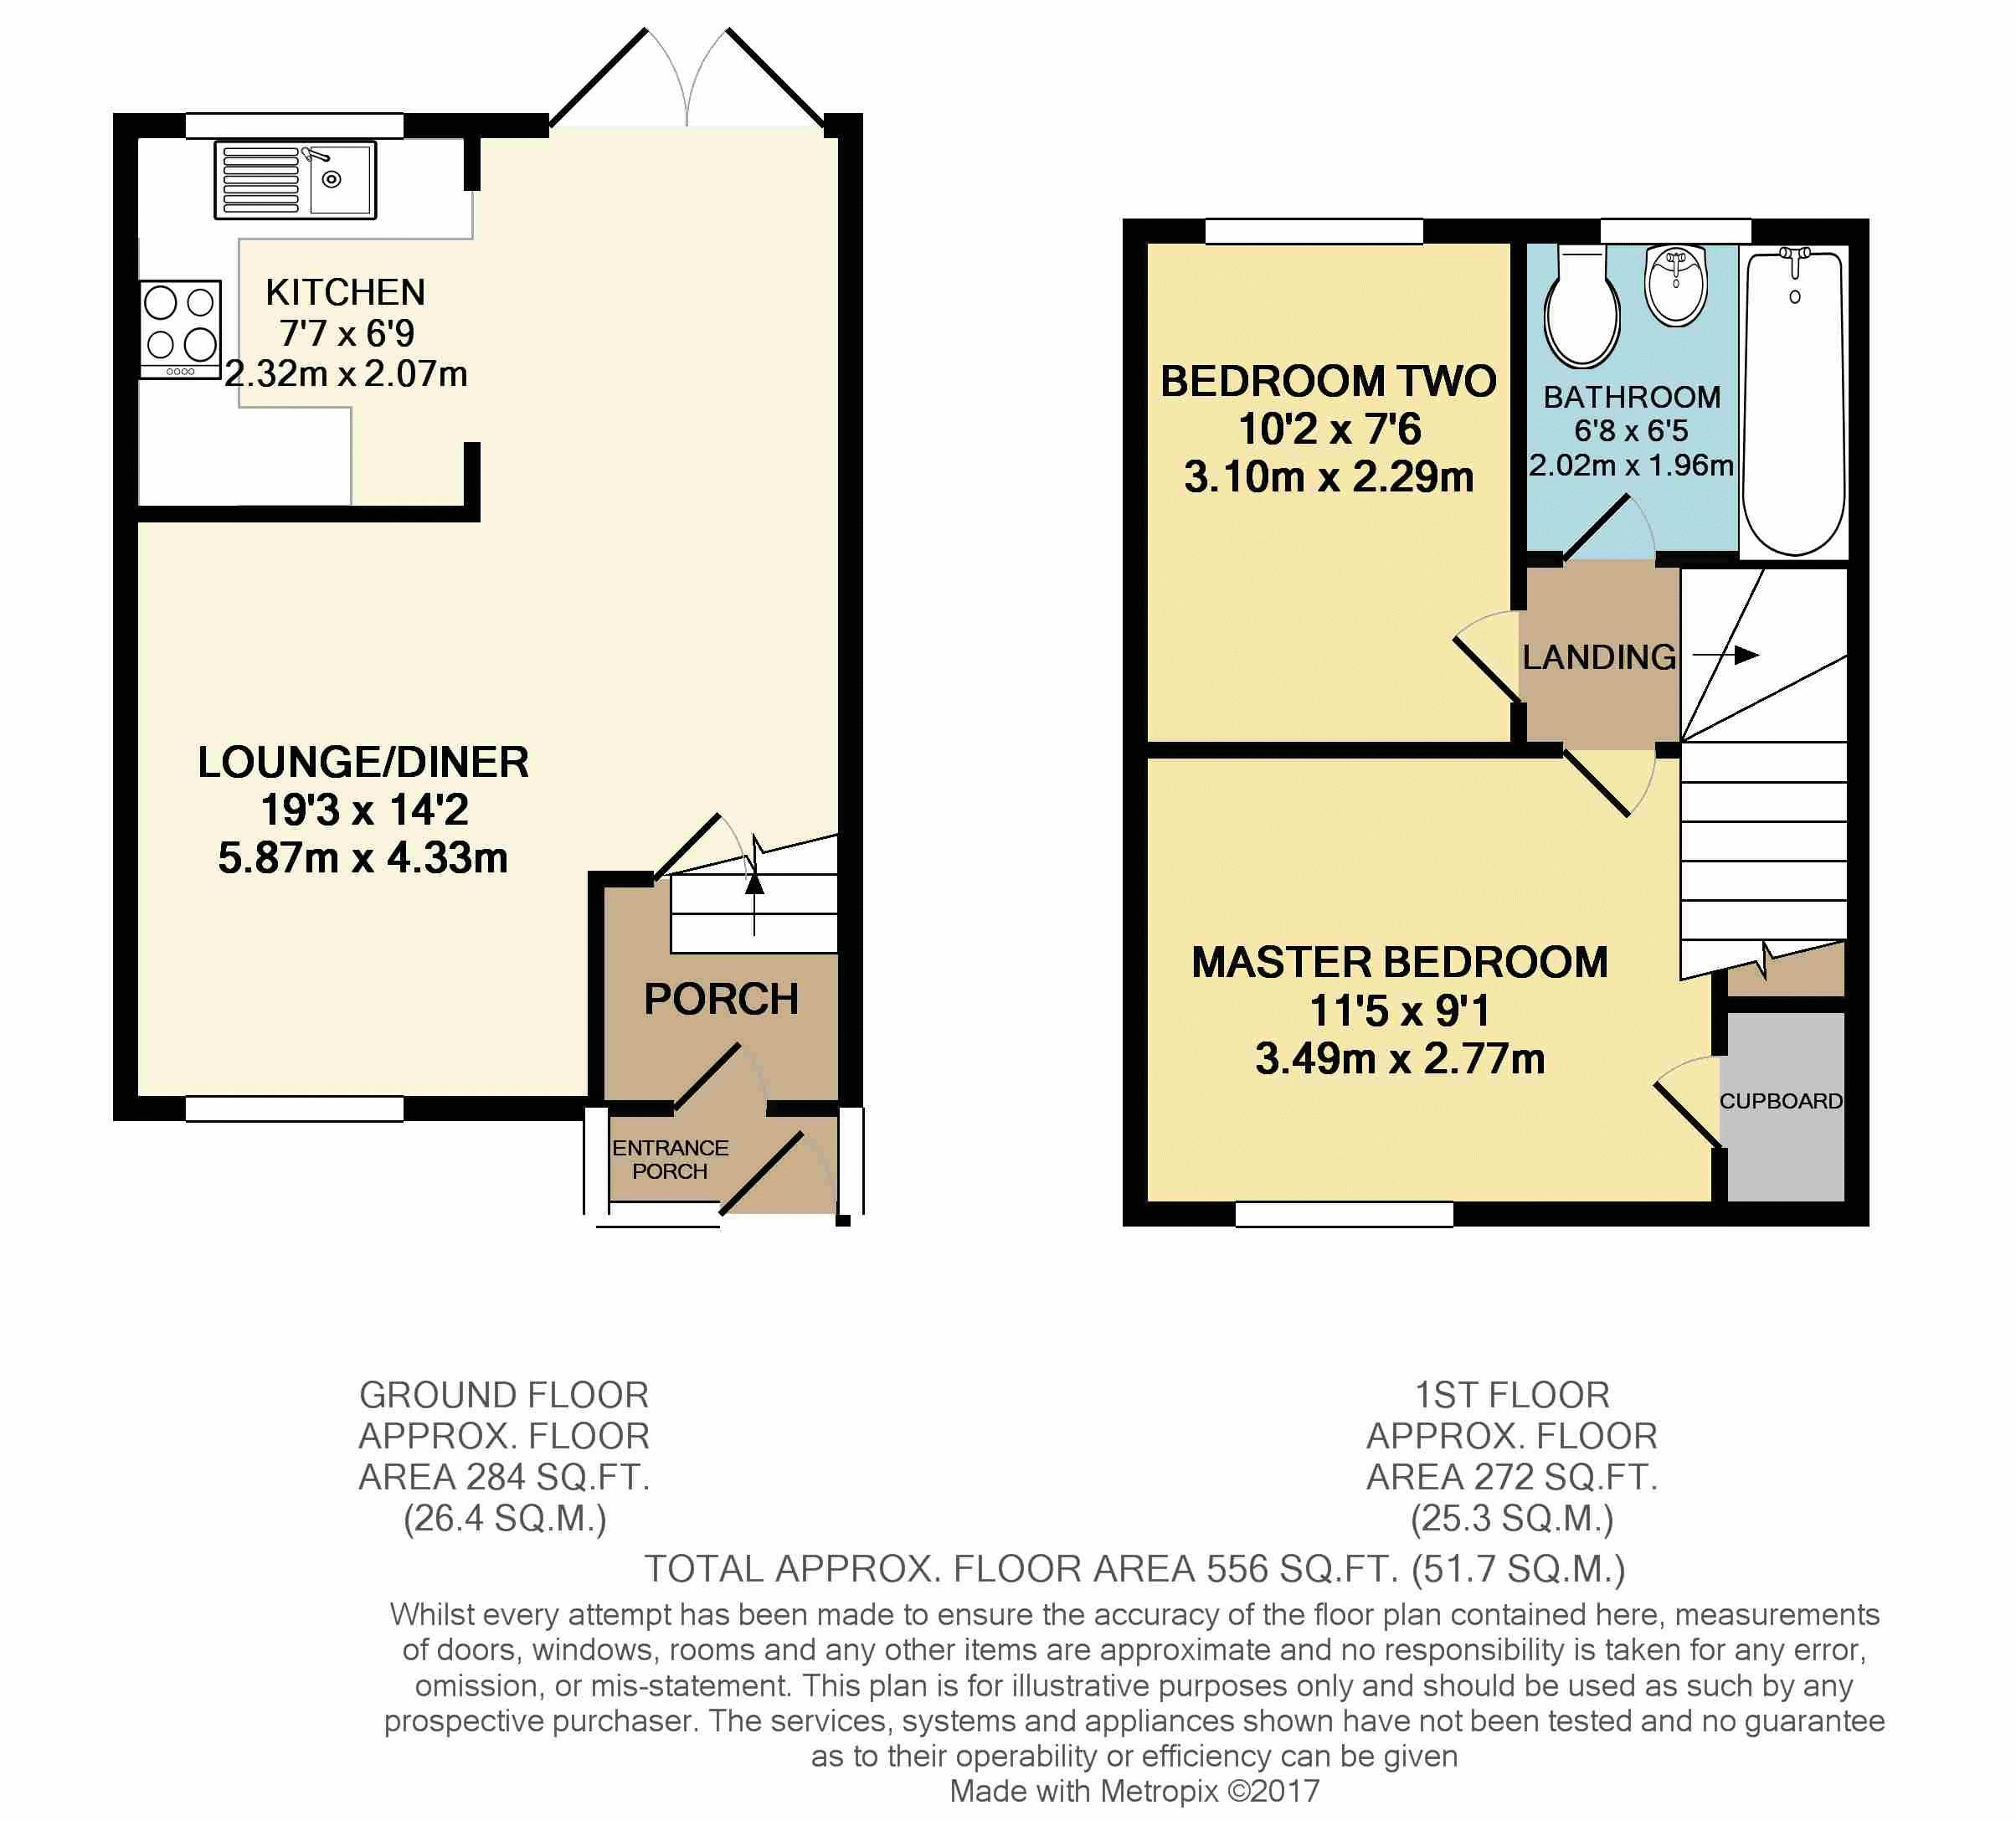 2 bedroom house for sale in milton keynes for How much is a bedroom worth in an appraisal